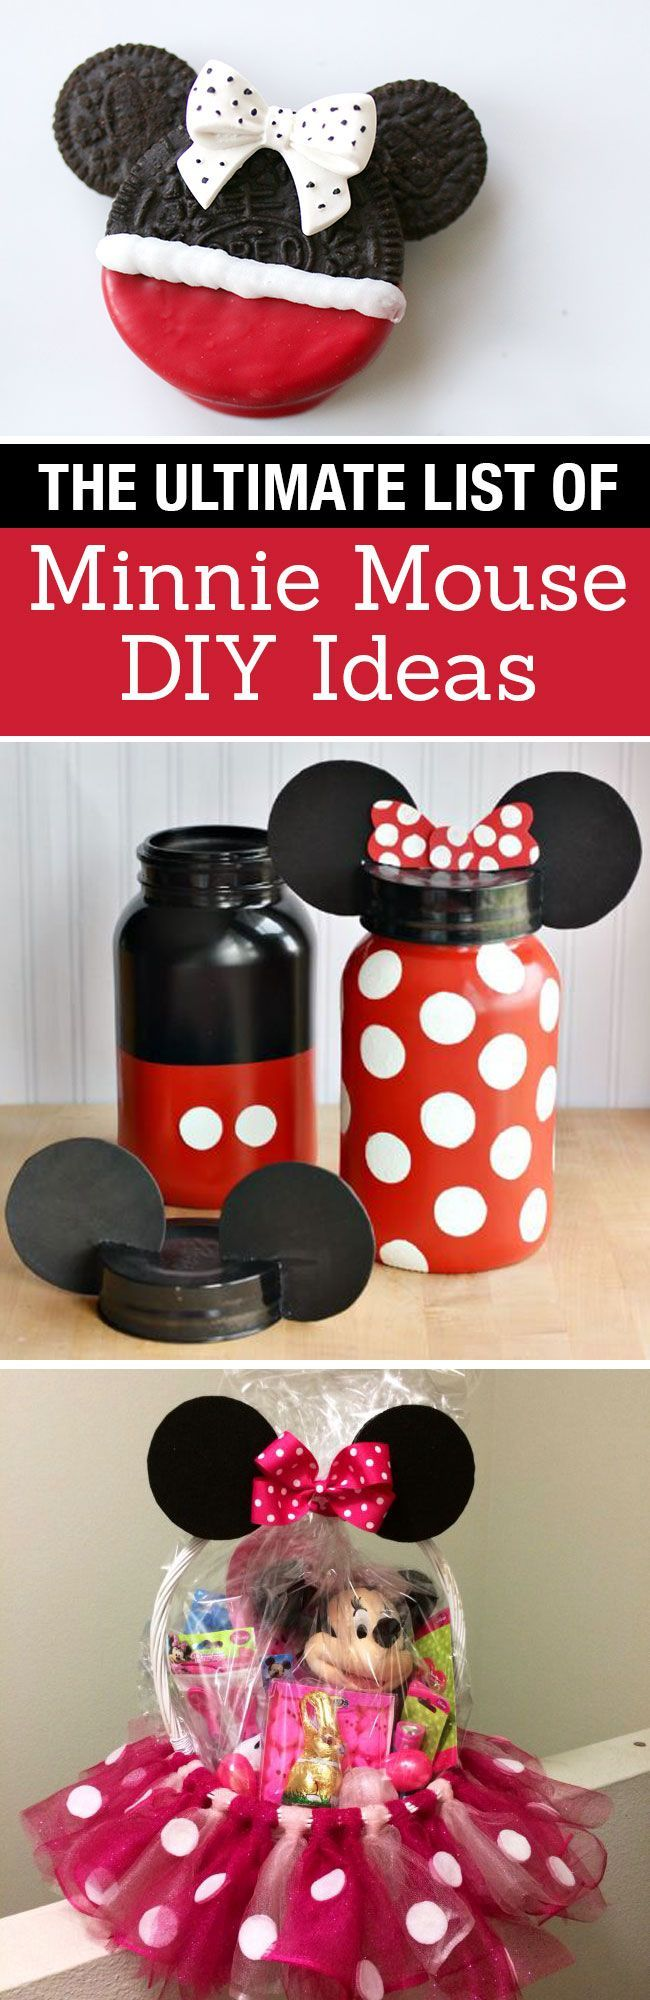 The Ultimate List of Minnie Mouse Craft Ideas! The Ultimate List of Minnie Mouse Craft Ideas! Party Ideas, DIY Crafts and Disney themed fun food recipes.